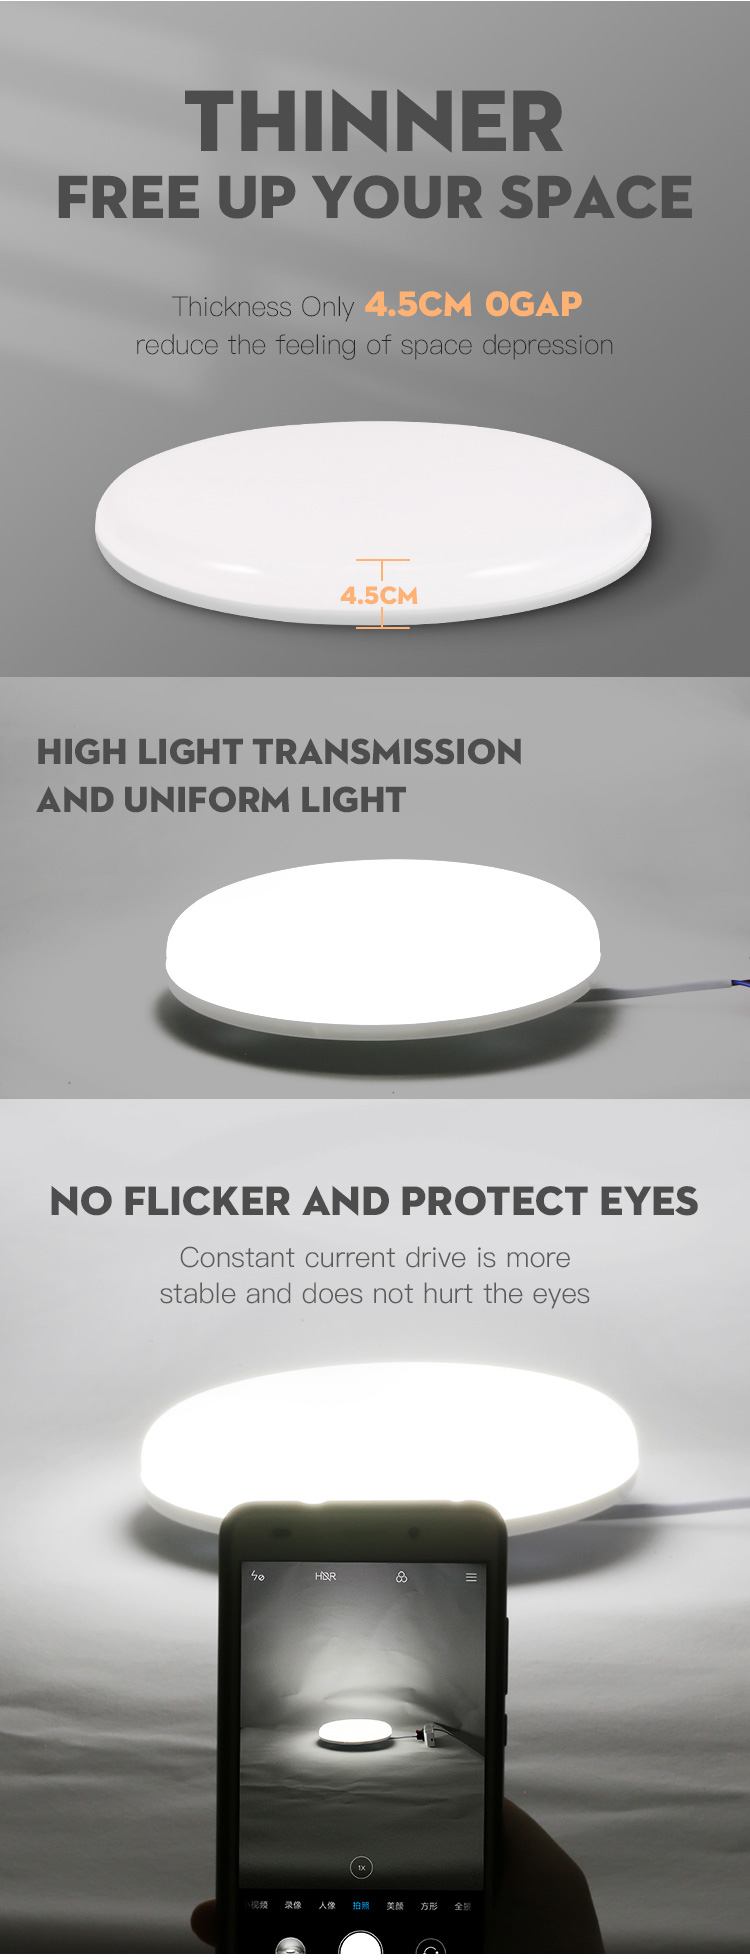 Hae65ed42b68b41da9605dec05a8ca6a9w Led Ceiling Lights Modern LED Ceiling Lamp Light 220V 15W 20W 30W 50W Cold Warm White  Lighting Surface Mounted For Home Kitchen